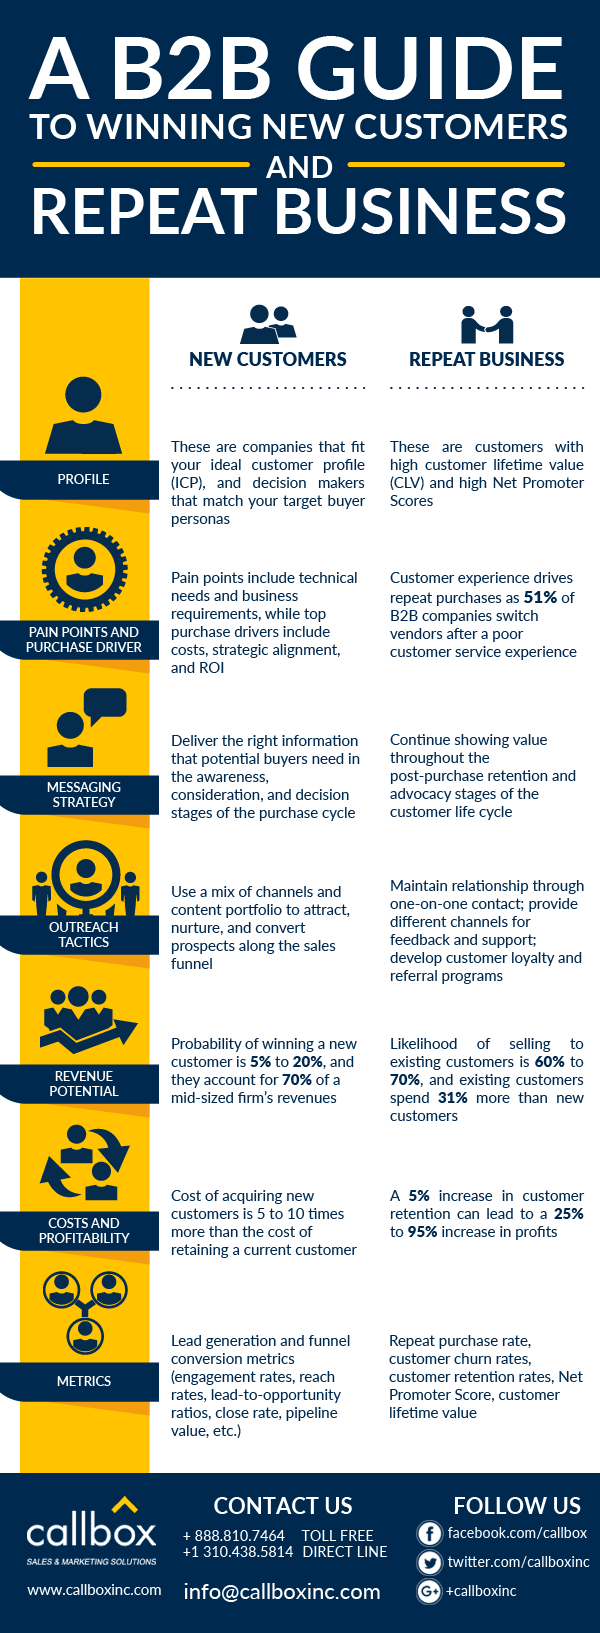 A B2B Guide to Winning New Customers and Repeat Business [INFOGRAPHIC]